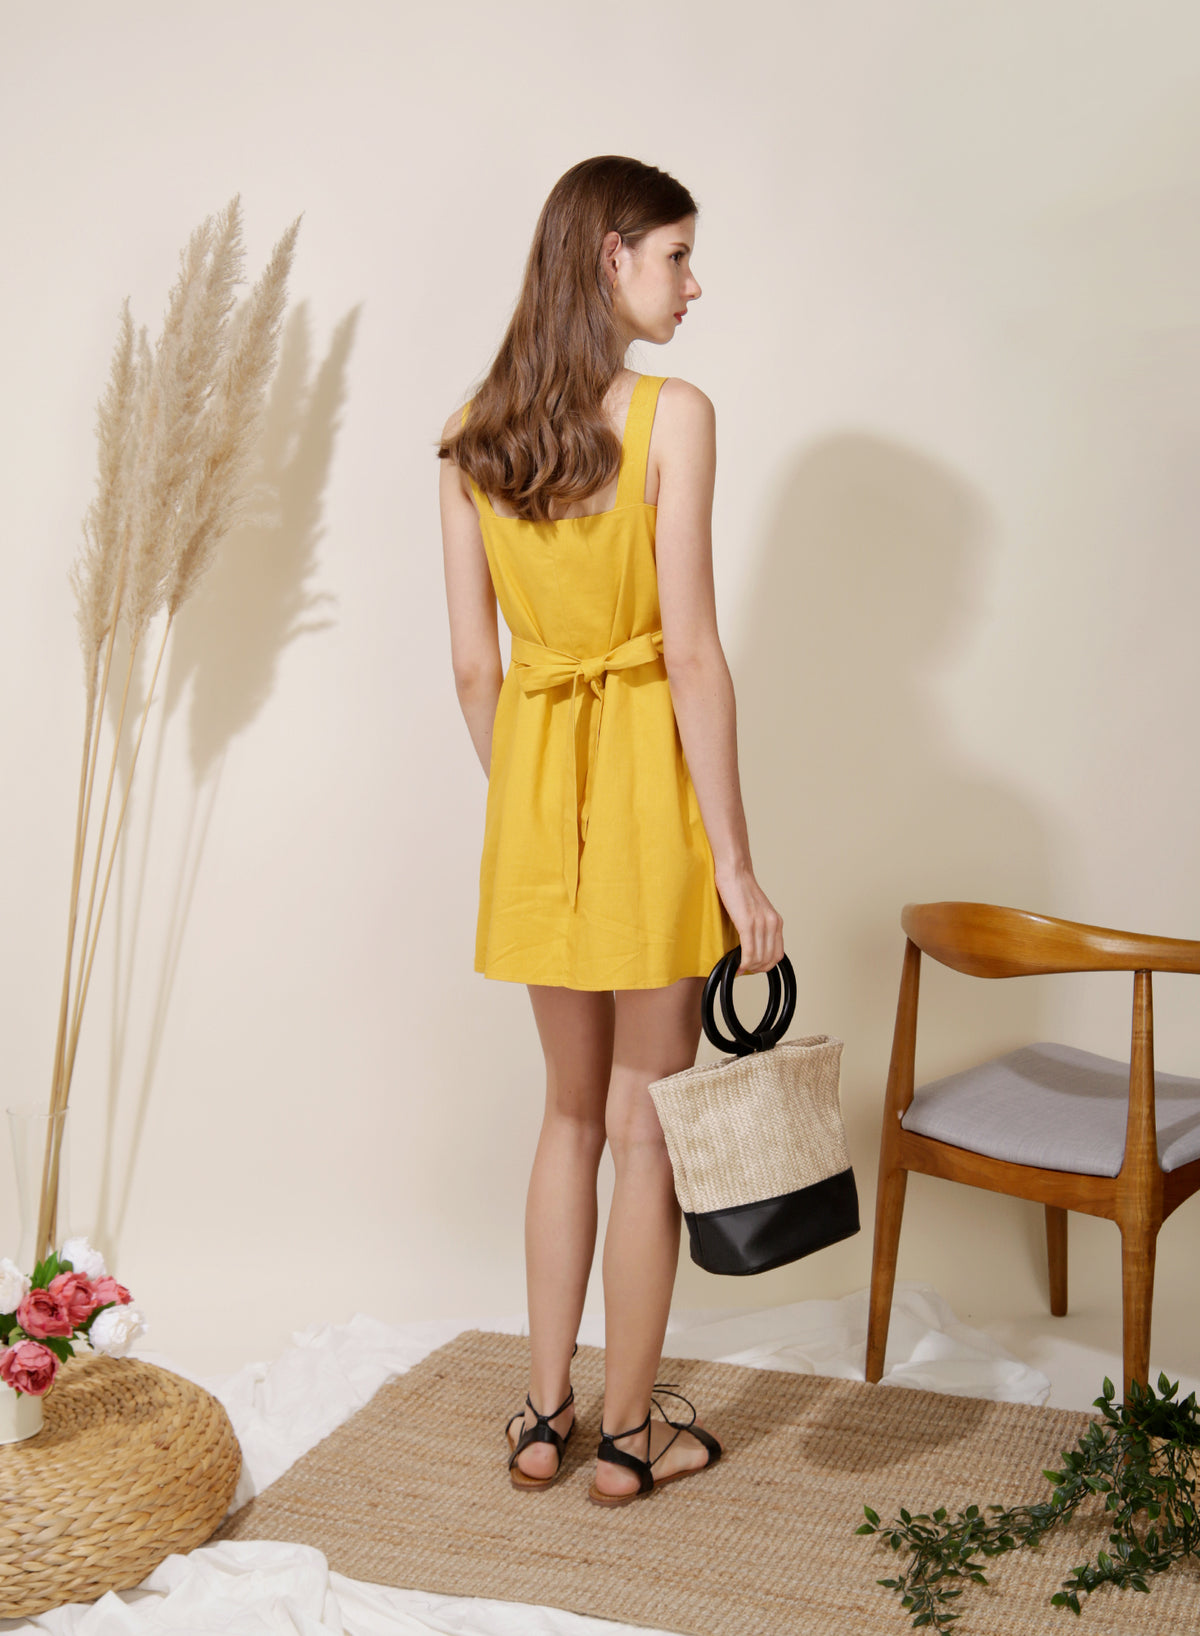 Finite Button Down Linen Dress (Sunshine) at $ 42.50 only sold at And Well Dressed Online Fashion Store Singapore